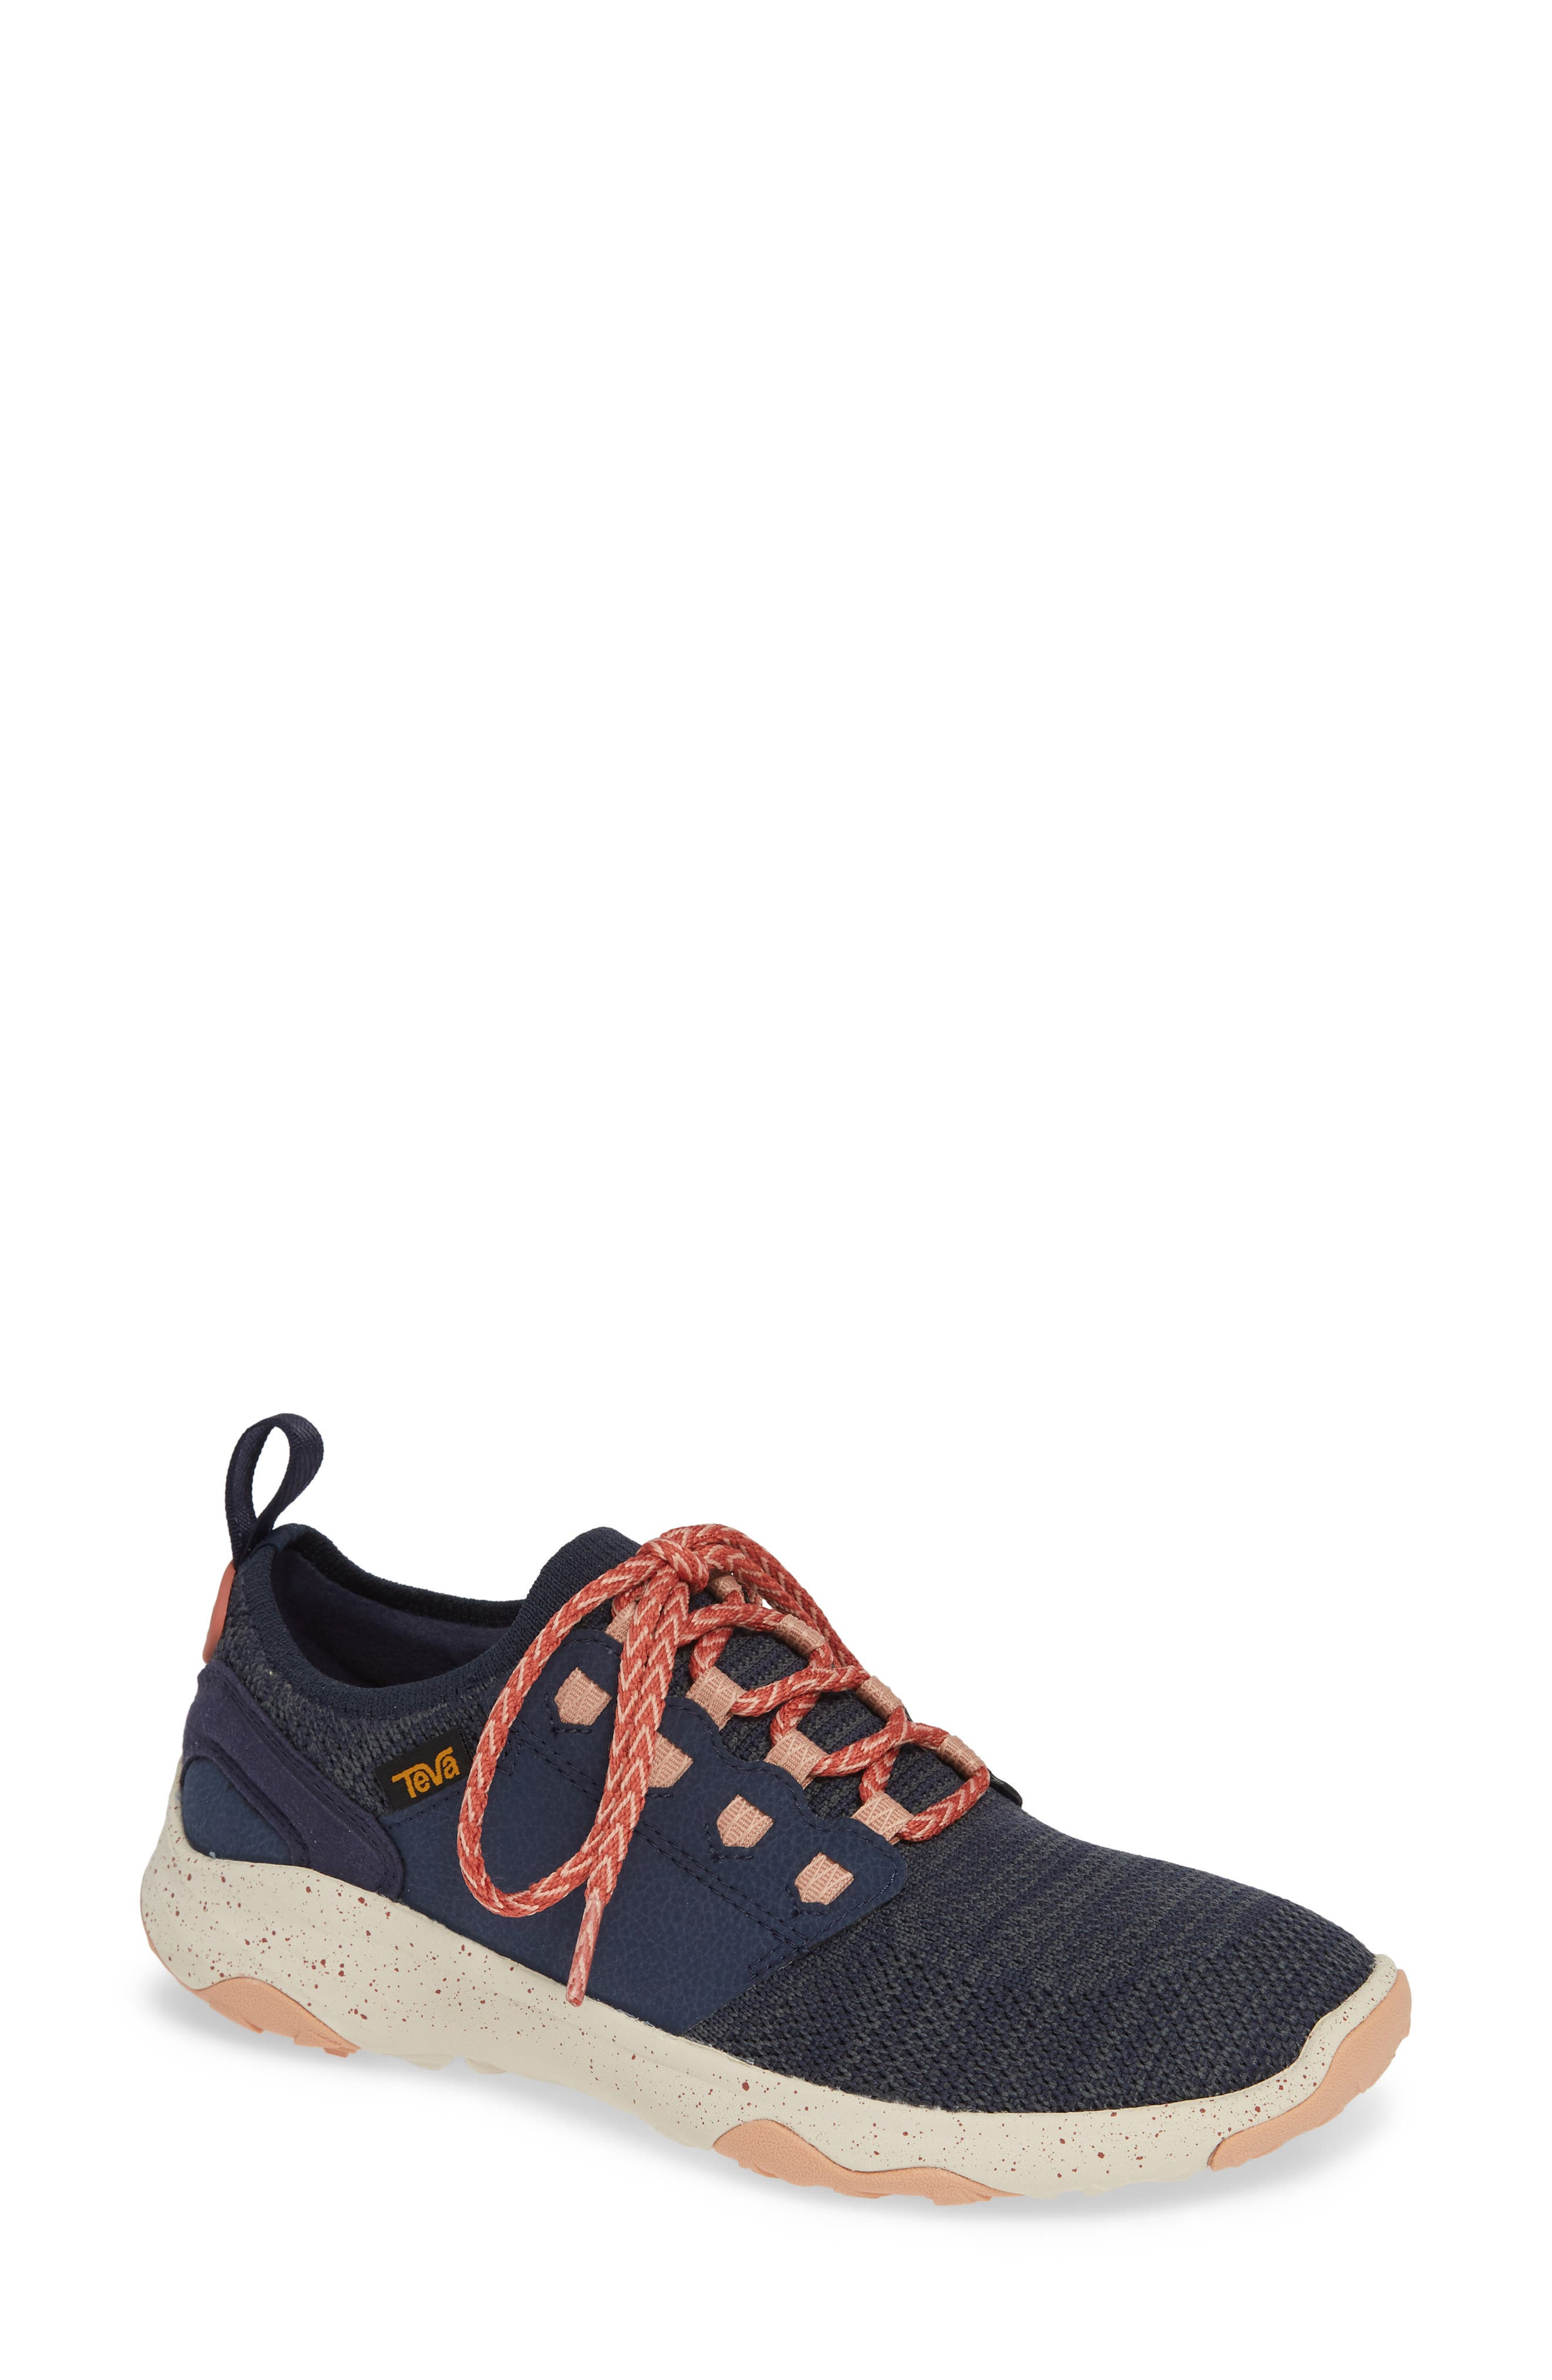 Arrowood 2 Waterproof Knit Sneaker,                         Main,                         color, MIDNIGHT NAVY FABRIC